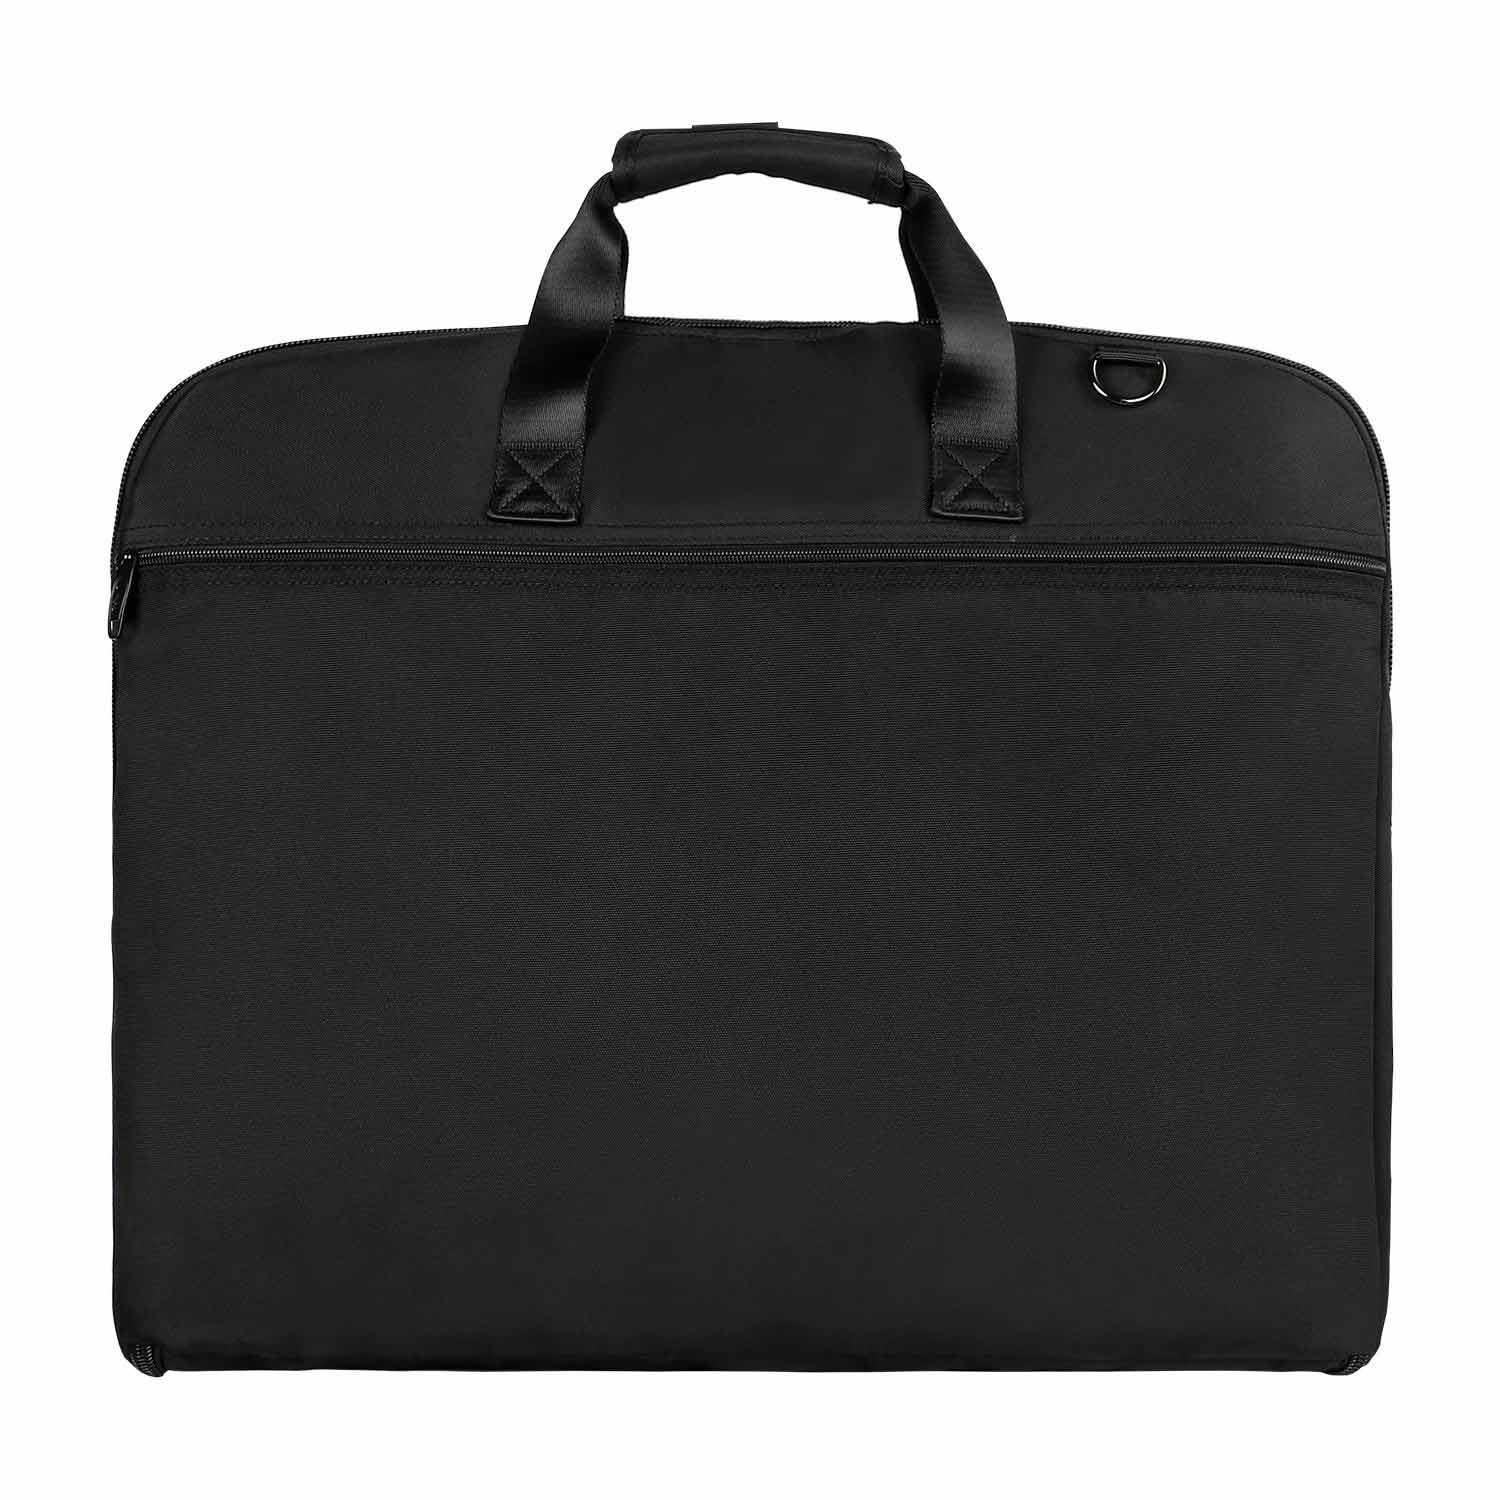 Matein Slim Garment Bag - travel laptop backpack